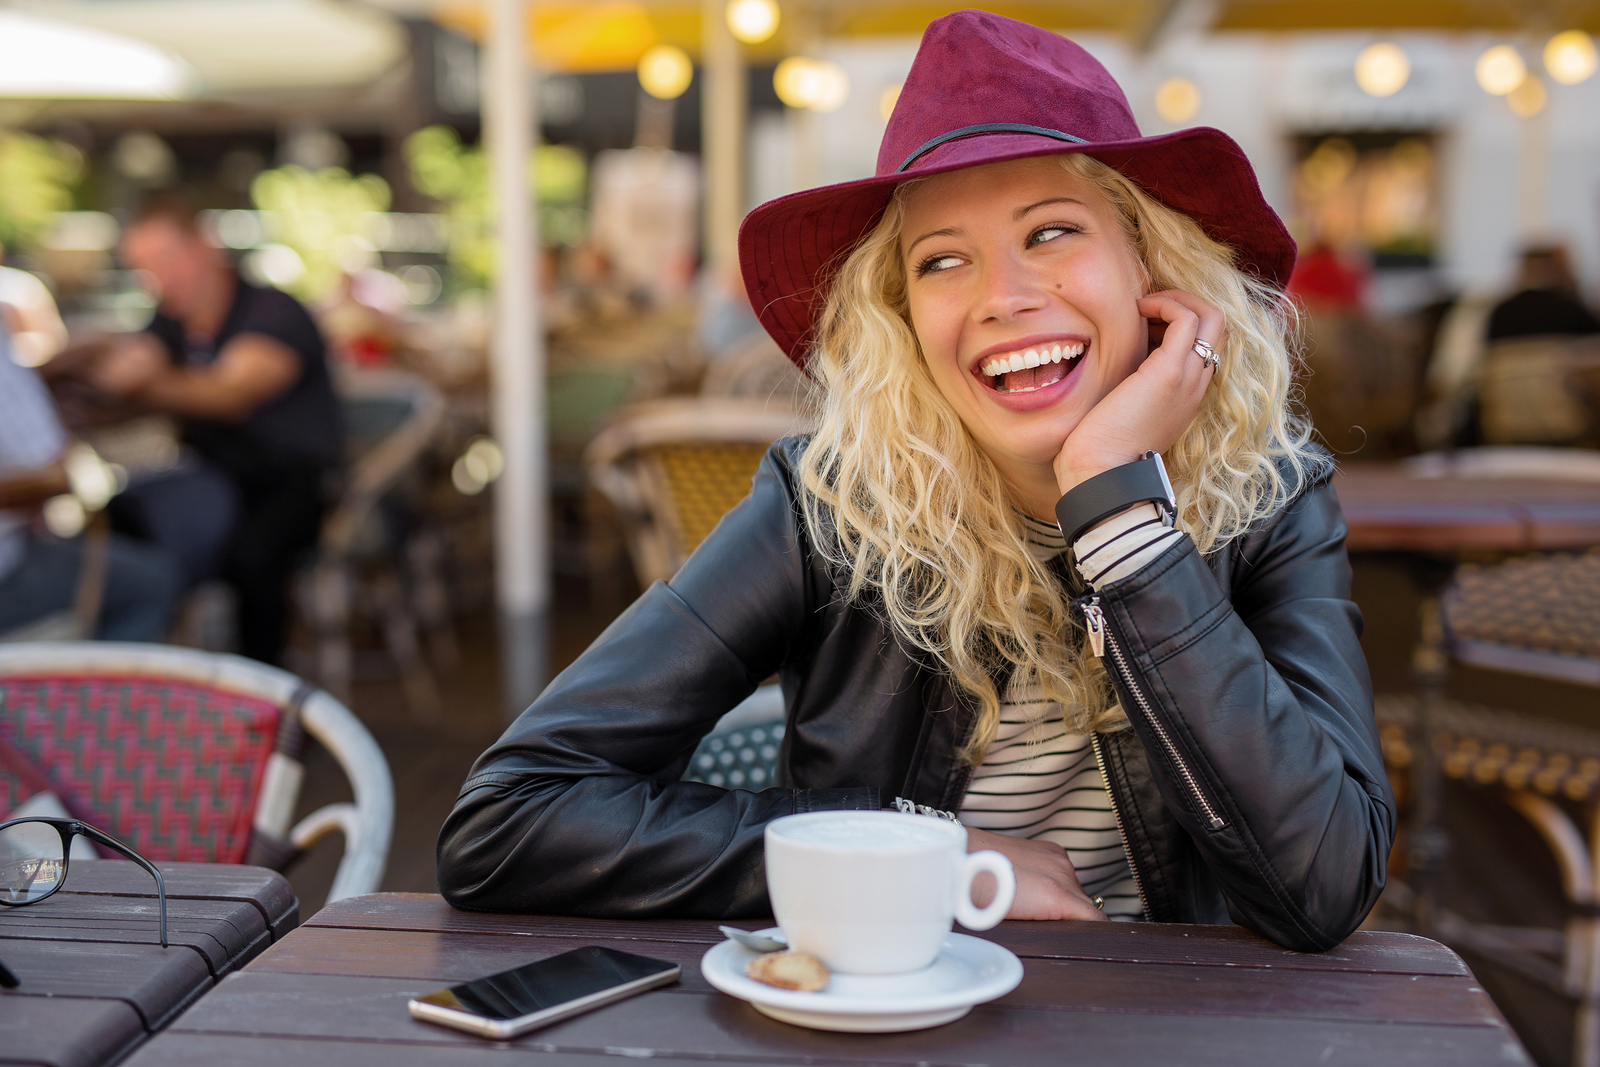 Beautiful woman with red hat laughing while on coffee break